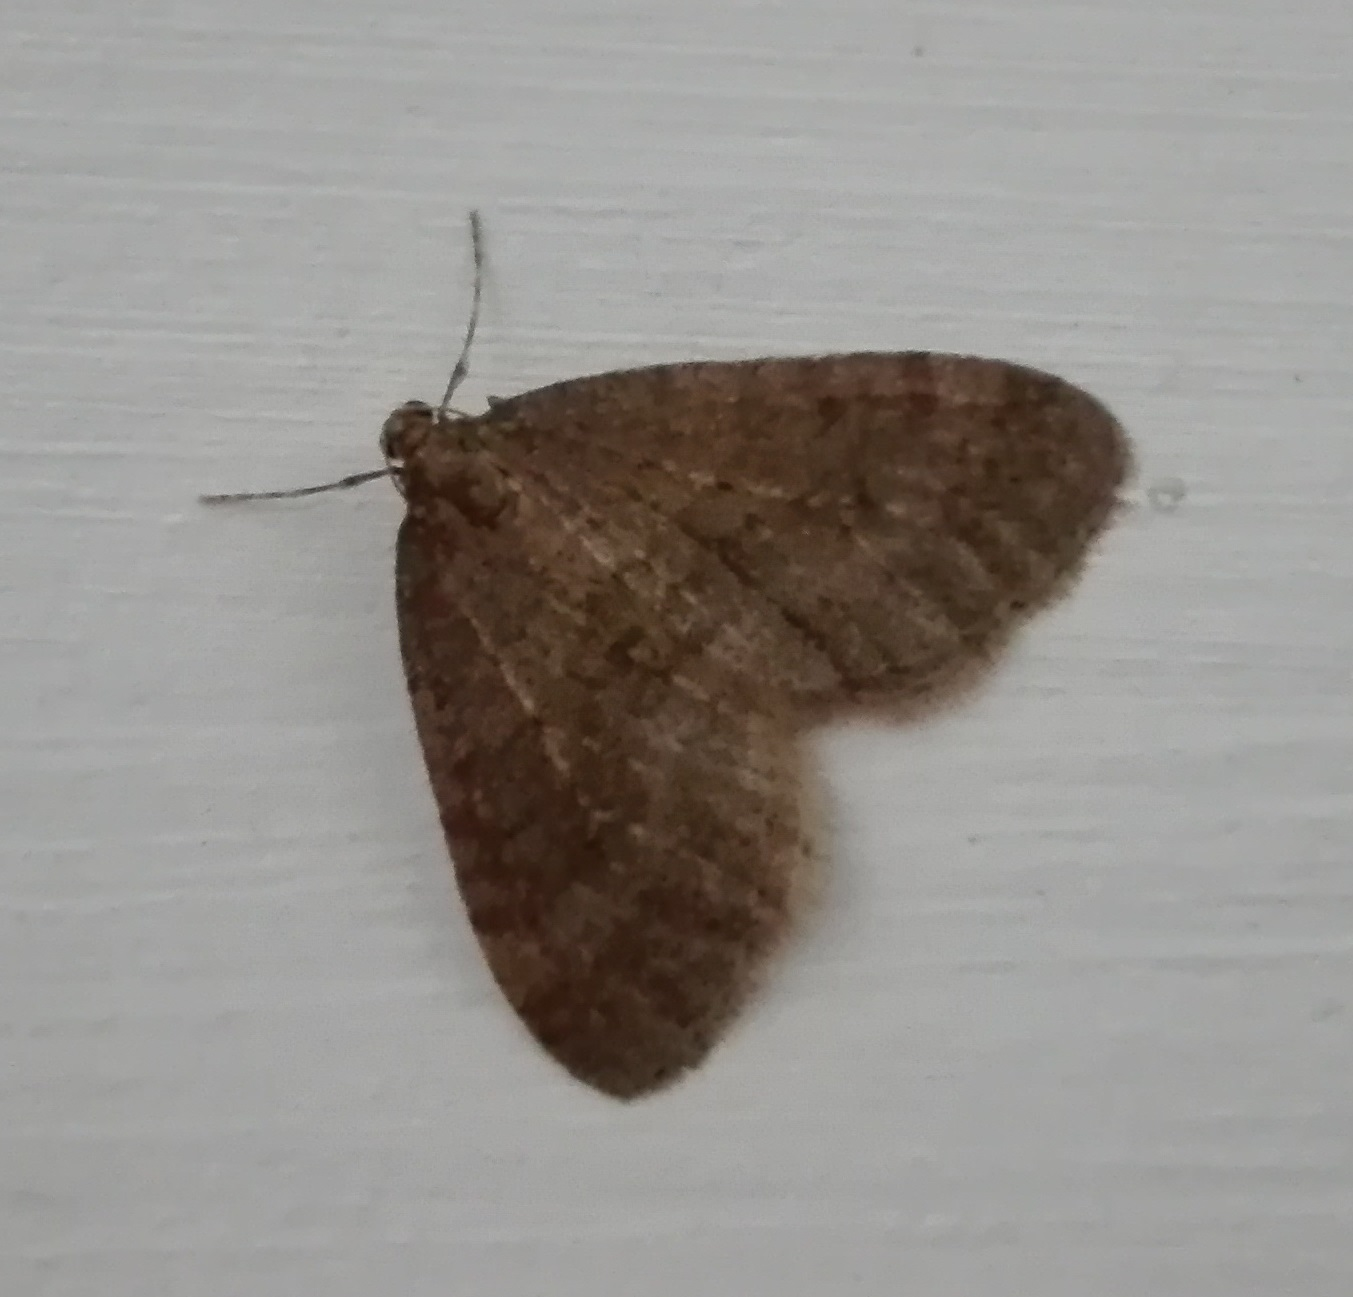 401 winter moth.jpg